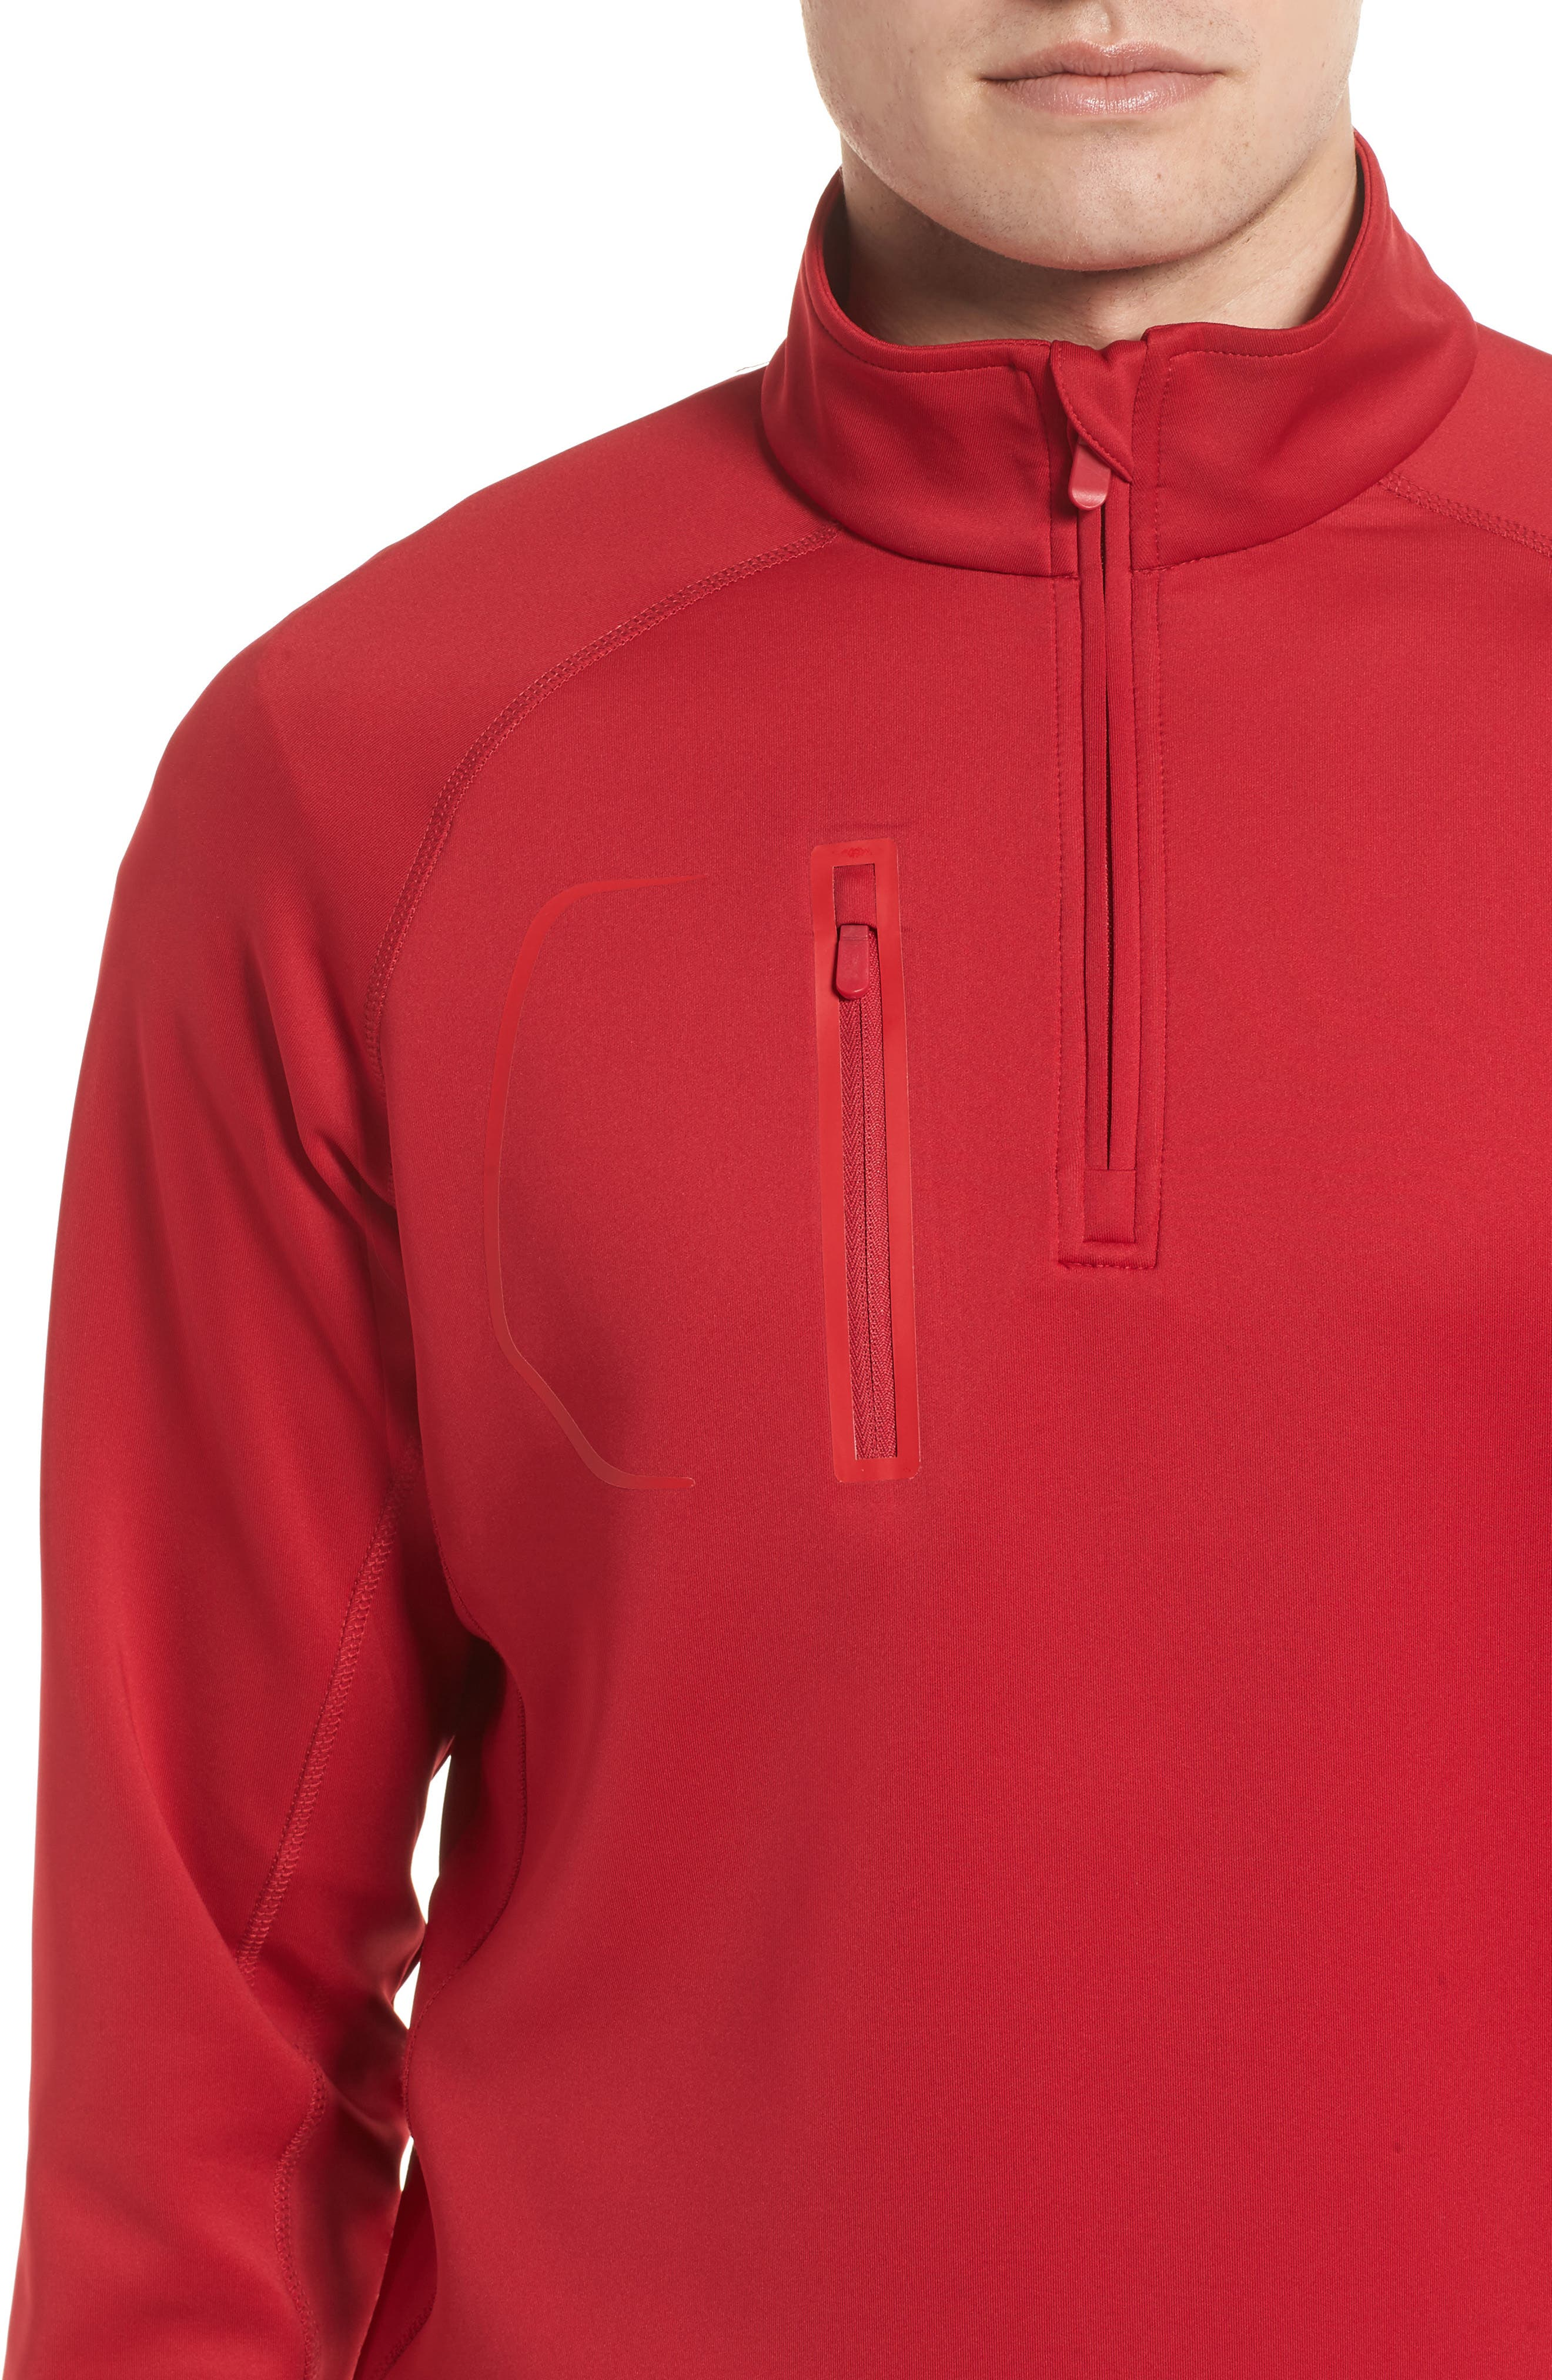 XH2O Crawford Stretch Quarter Zip Golf Pullover,                             Alternate thumbnail 41, color,